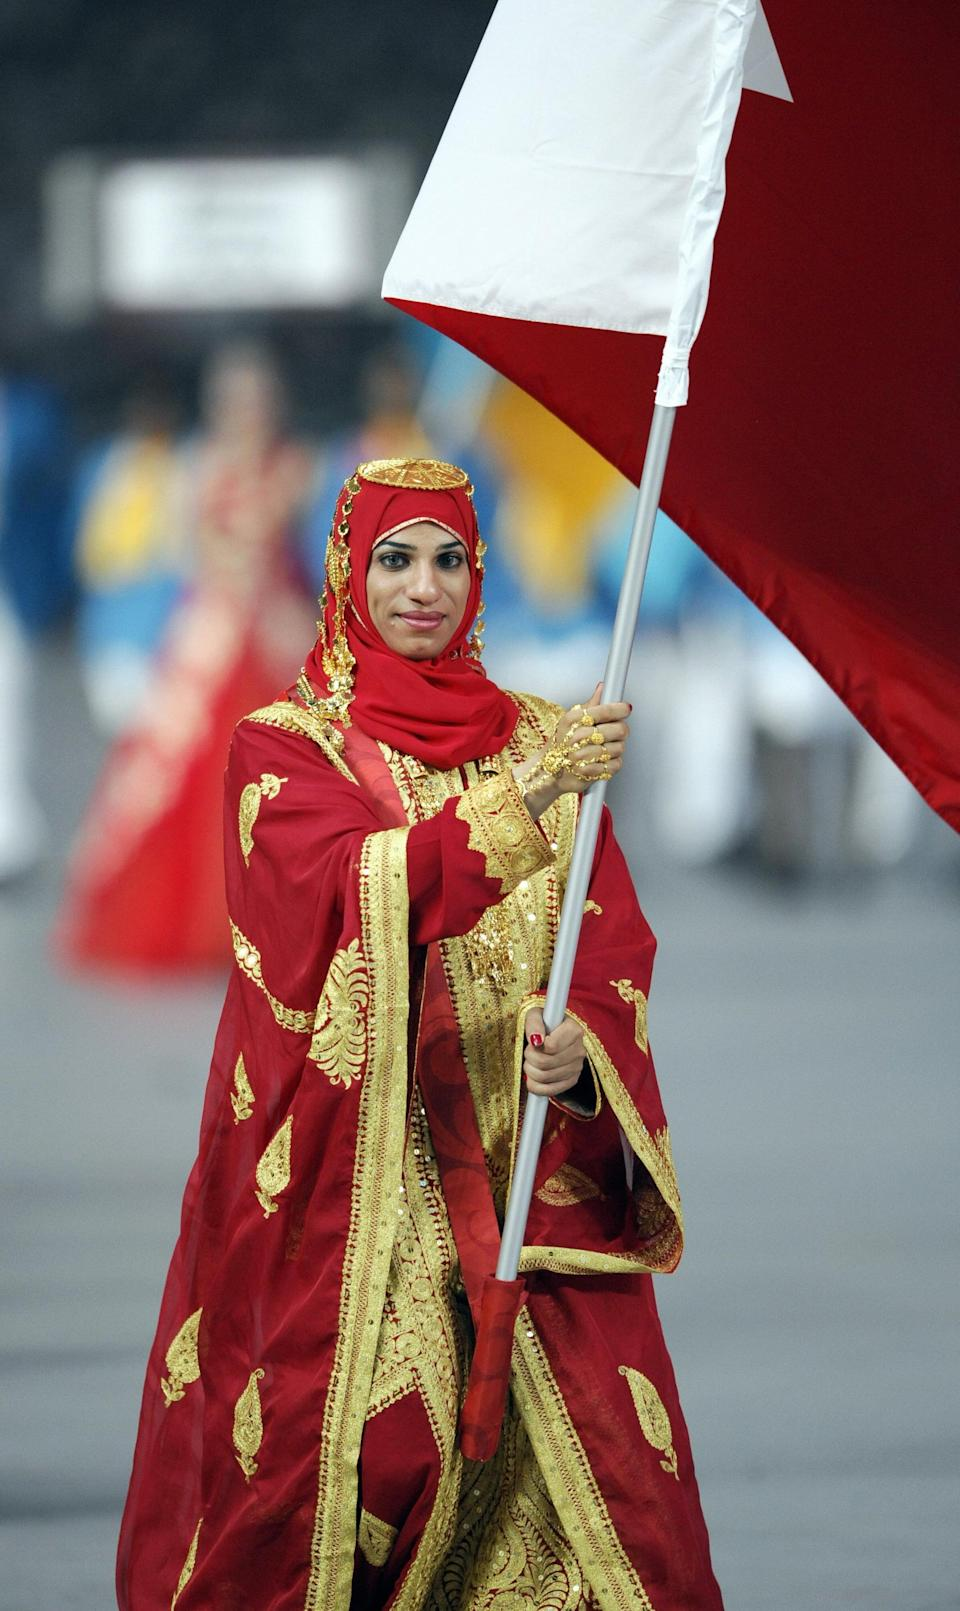 <p>In 2004, Bahraini olympic athlete Roqaya Al-Ghasara was the first woman to run in a headscarf during the 100 meter sprint, but she went on to compete in 2006 and 2008, too. Here, she leads the Olympic delegation of Bahrain at the opening ceremony for the Beijing Olympic Games in her beautiful tailor made outfit with ornate trim and gold sequins.</p>